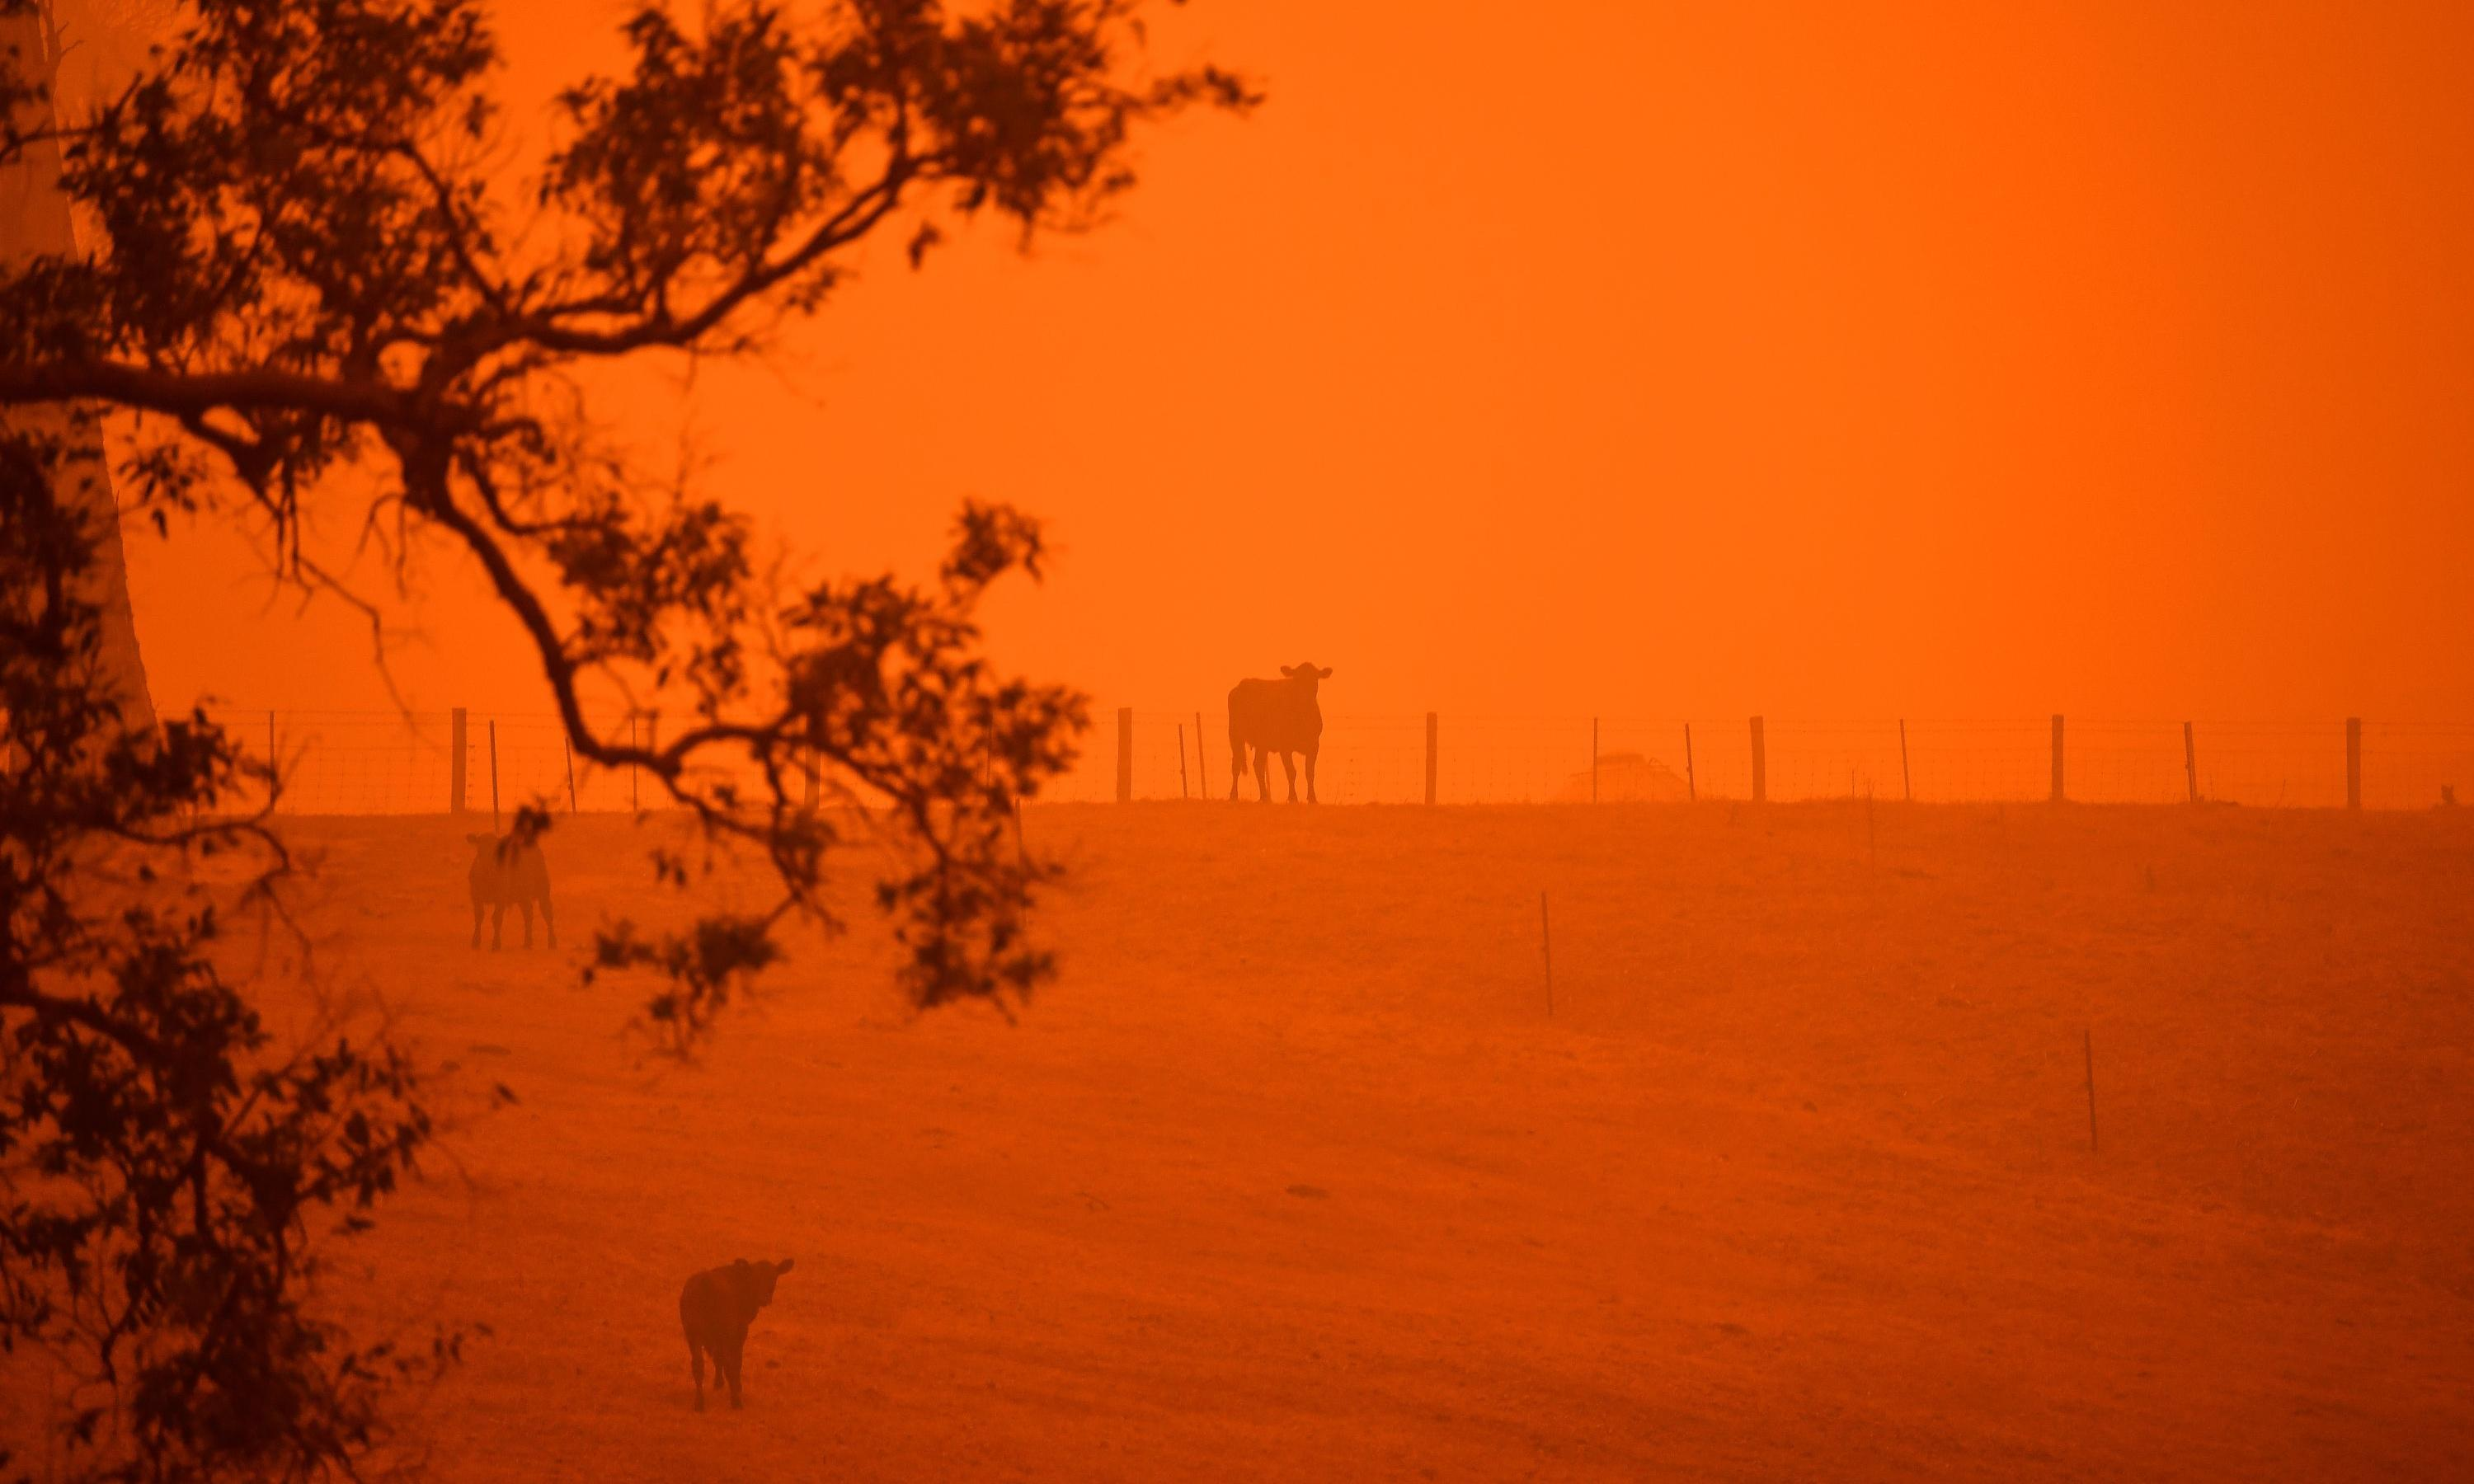 Disinformation on Australian bushfires should not be spread by ministers